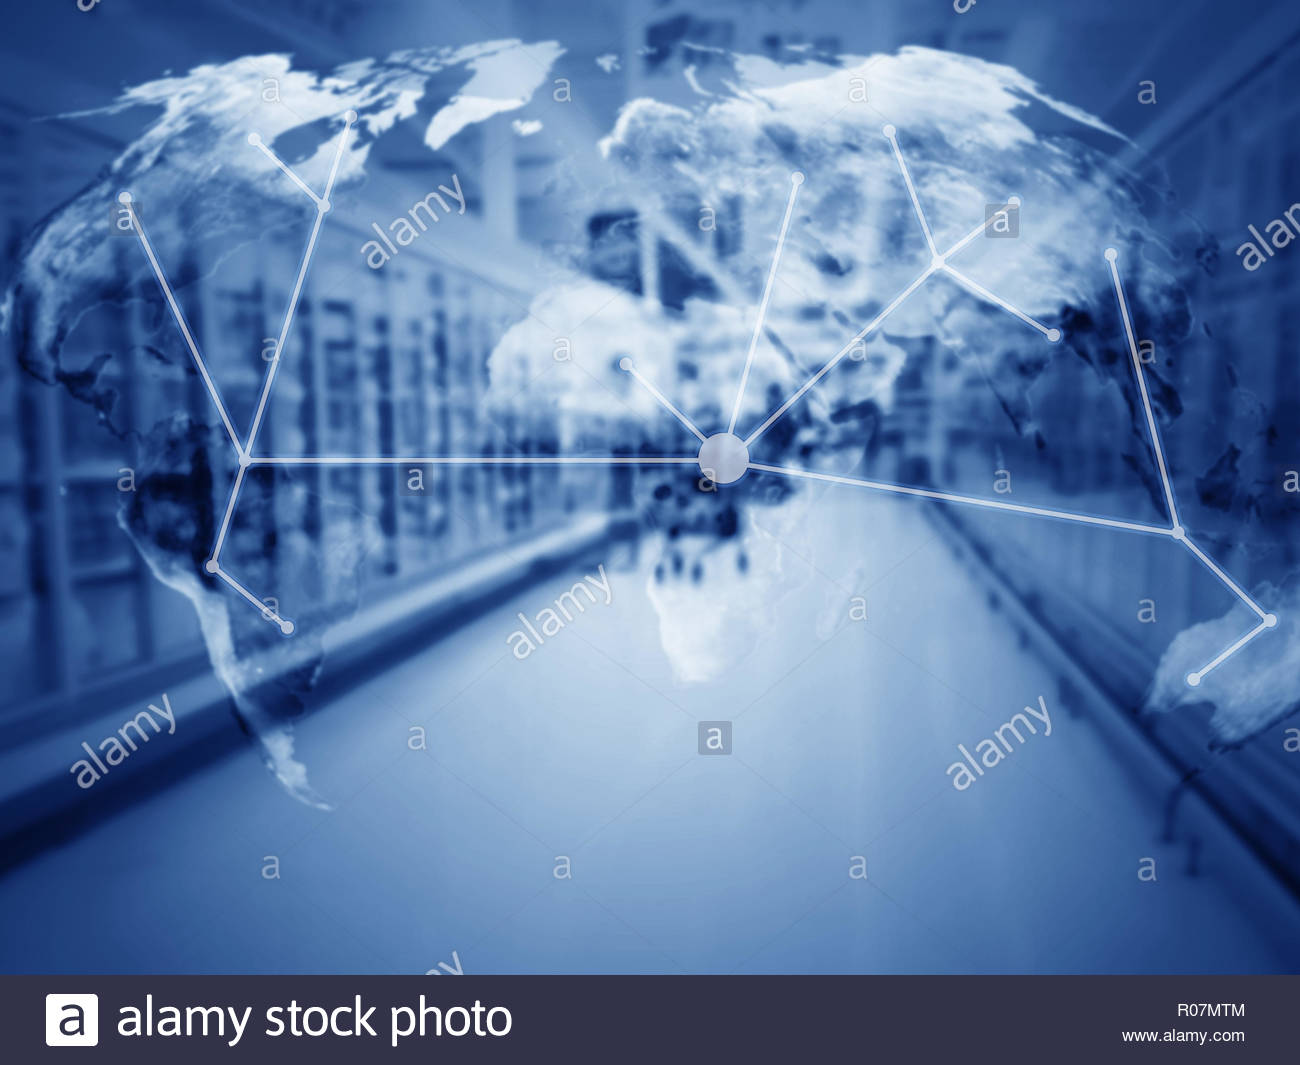 Global trading network, supply chain management concept